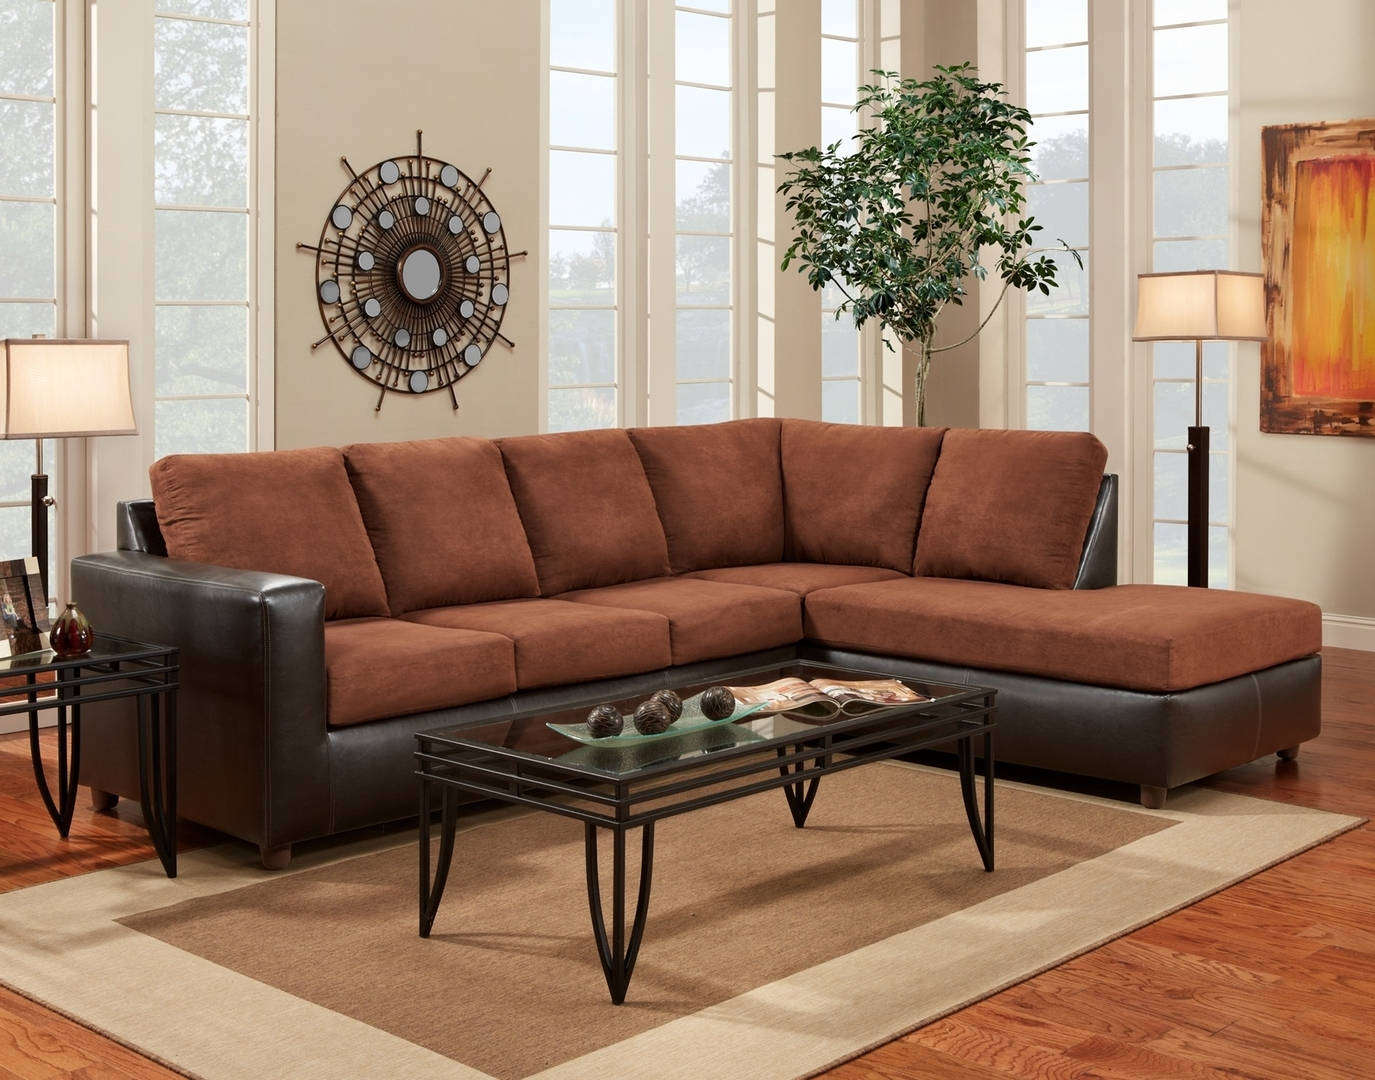 Widely Used Sectionals: Tuscaloosa, Al: Southeastern Furniture In Tuscaloosa Sectional Sofas (View 15 of 20)